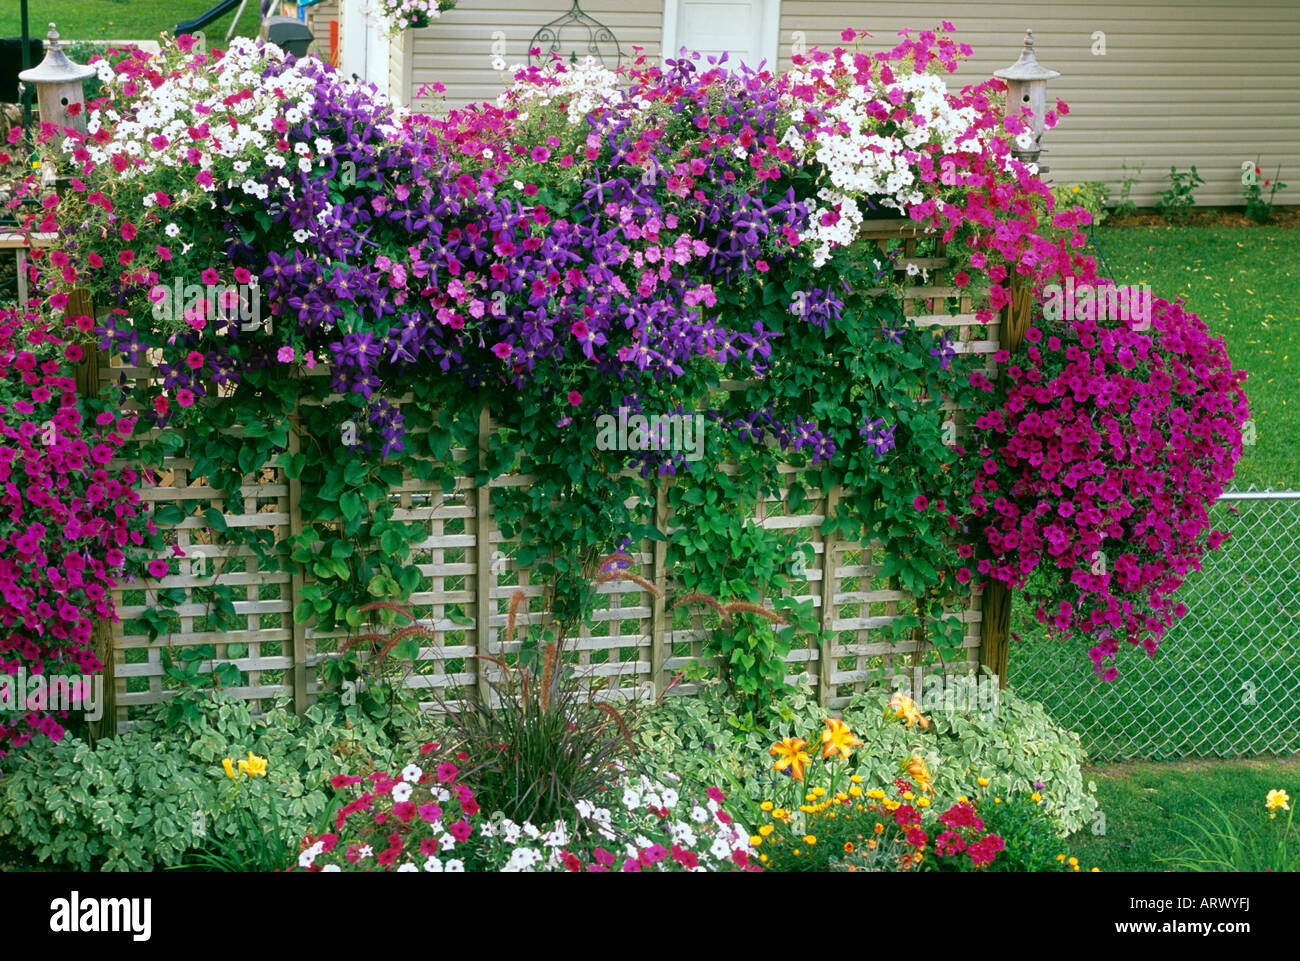 Small Space Gardening Privacy Fence In Minnesota Garden With Petunias Clematis